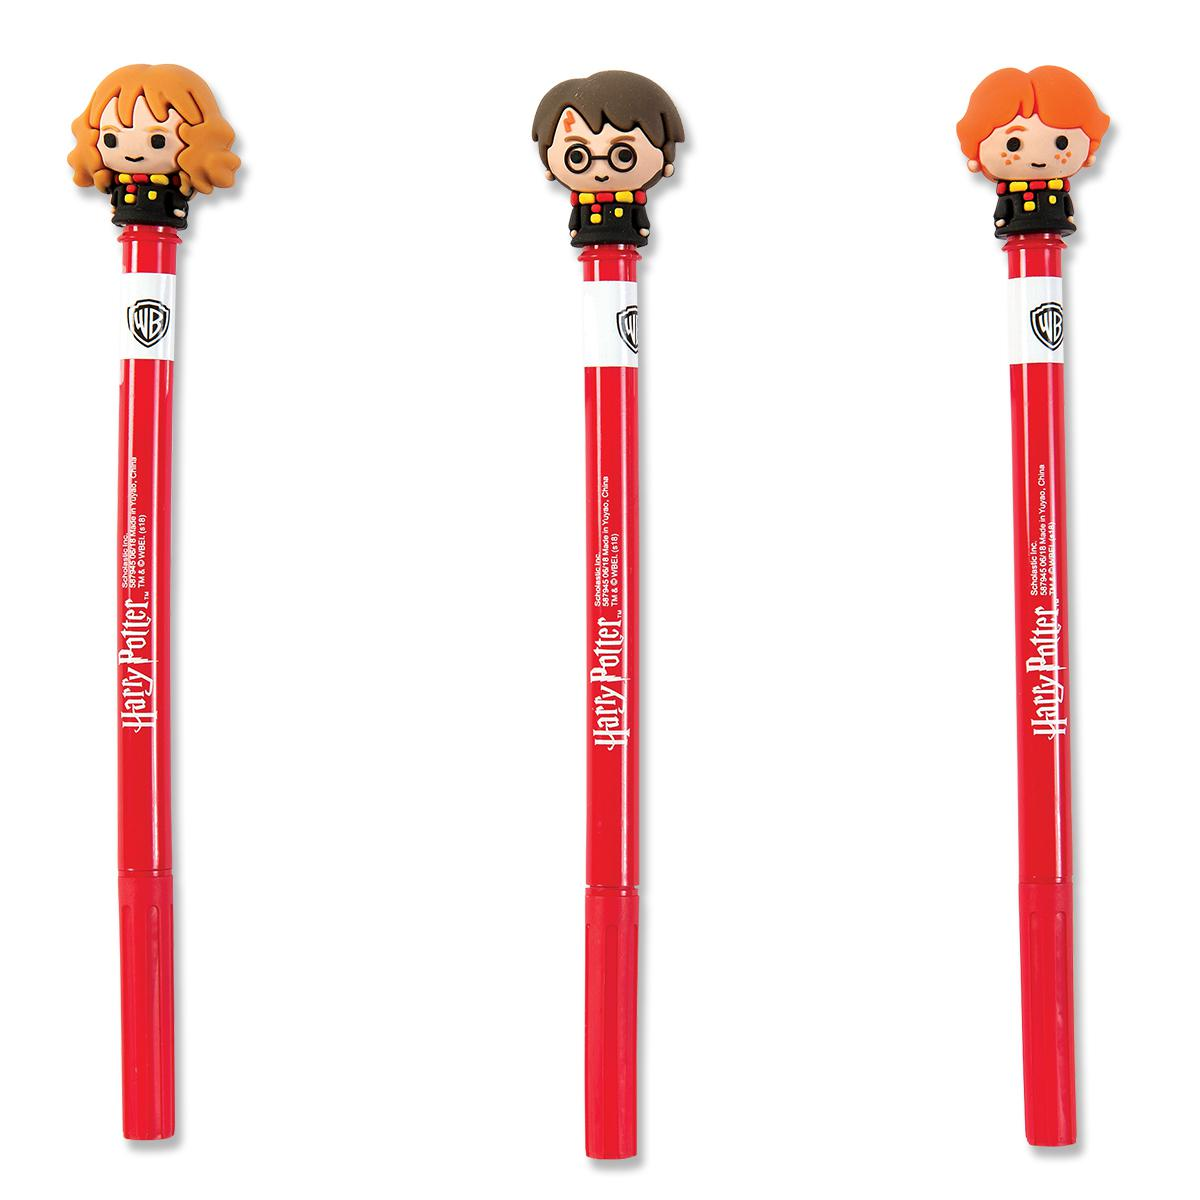 Harry Potter Pens 3-Pack